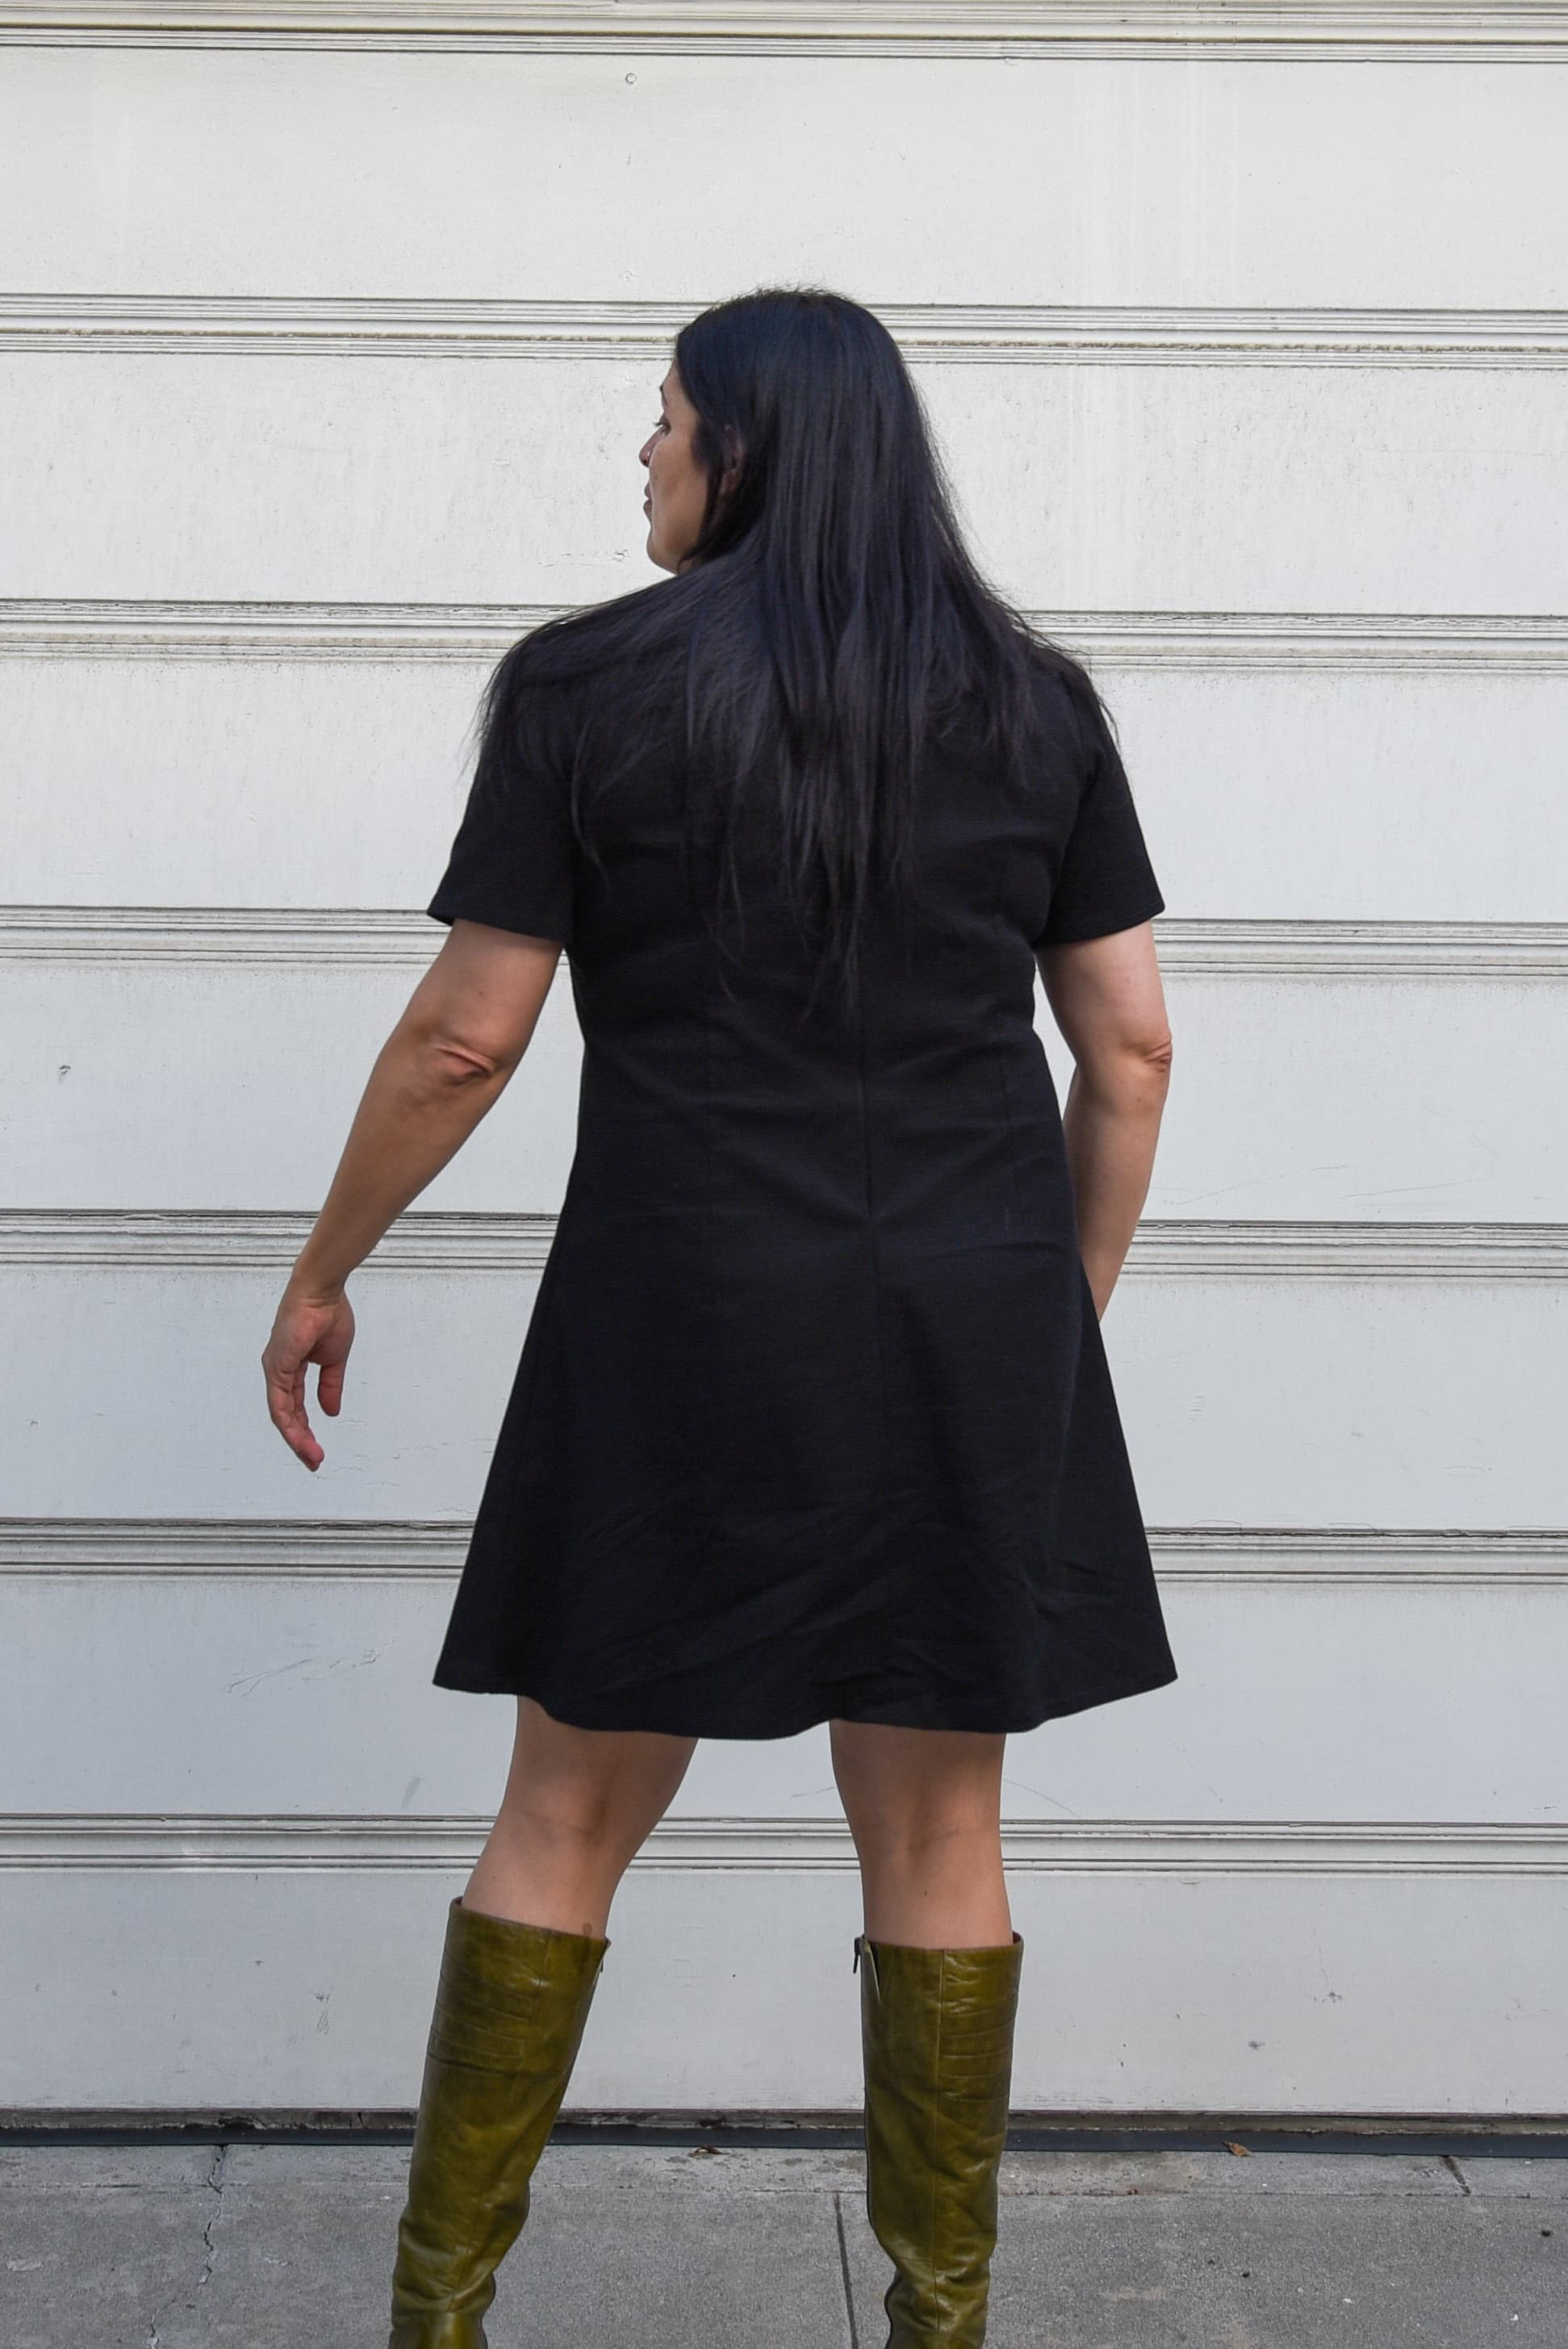 Image of Paula standing in front of a garage door, back facing the camera, wearing Simplicity 3833, an A-line dress in black pique cotton and boots